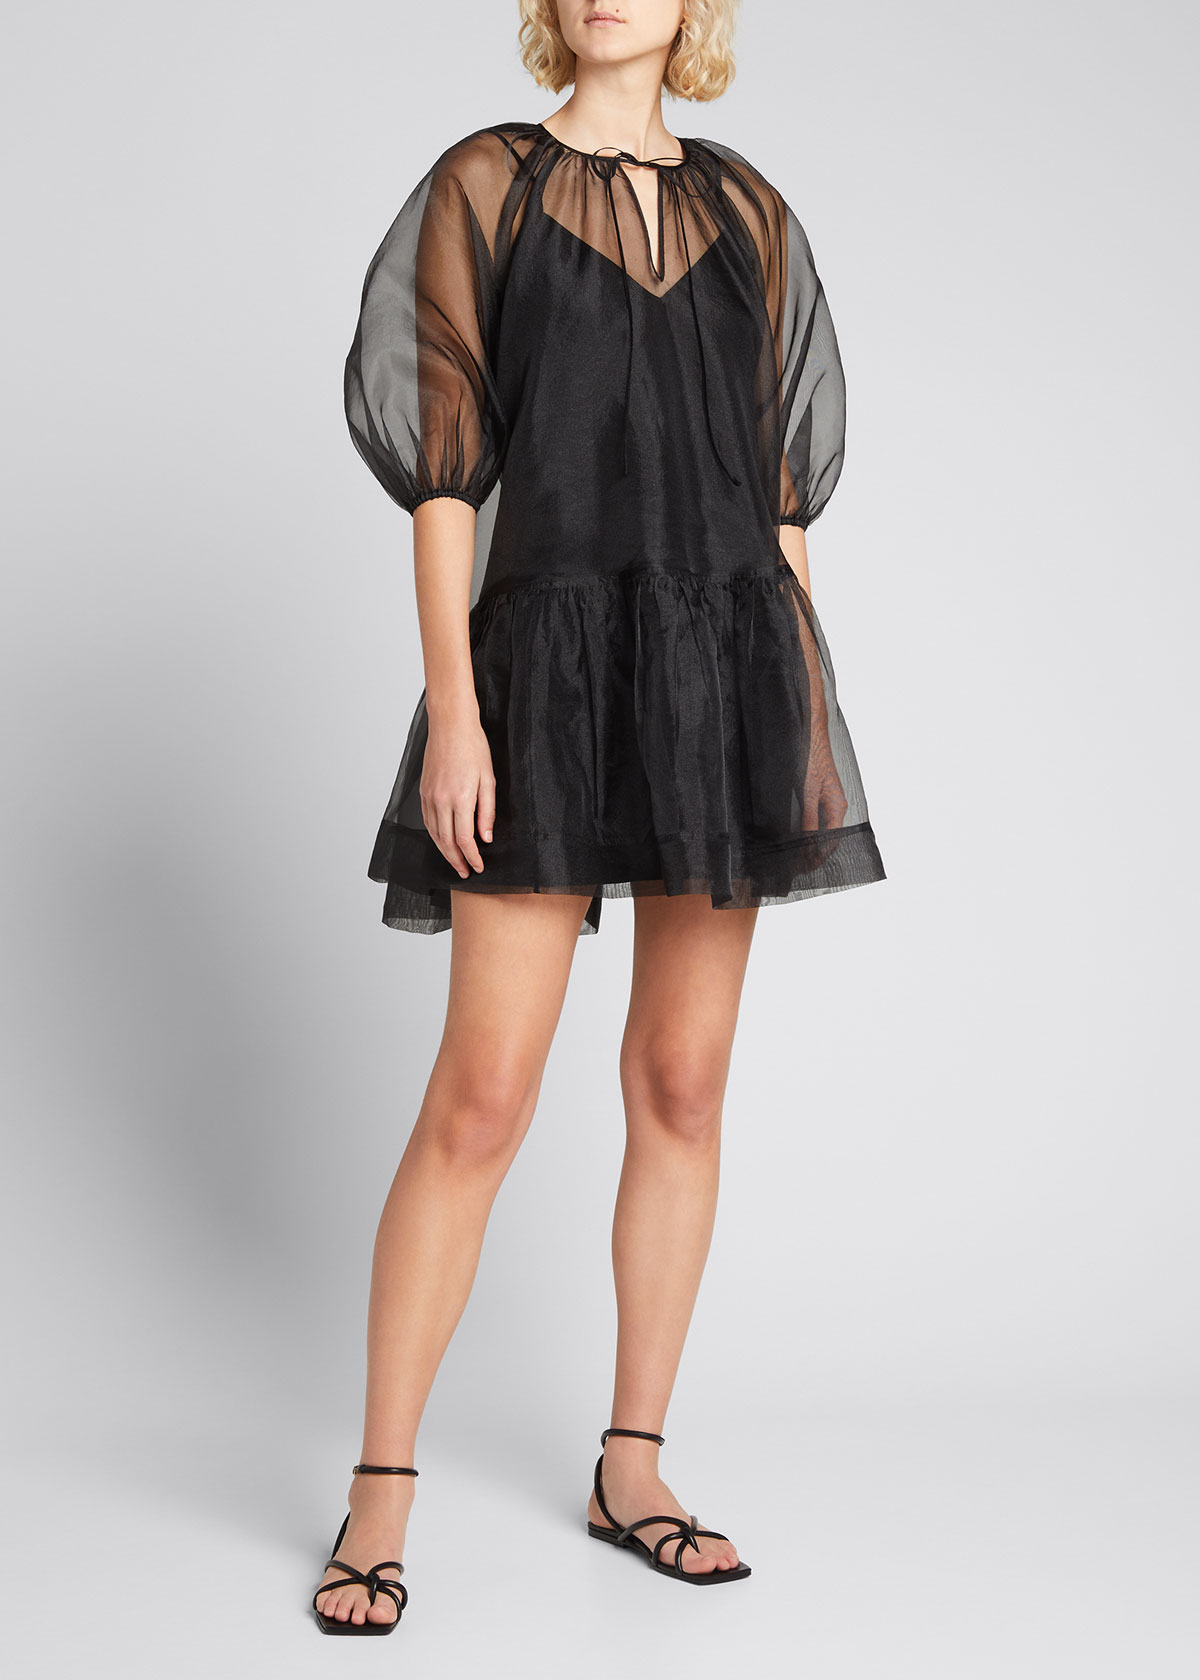 Jonathan Simkhai Mini dresses EVERLEE RECYCLED ORGANZA PUFF-SLEEVE DRESS